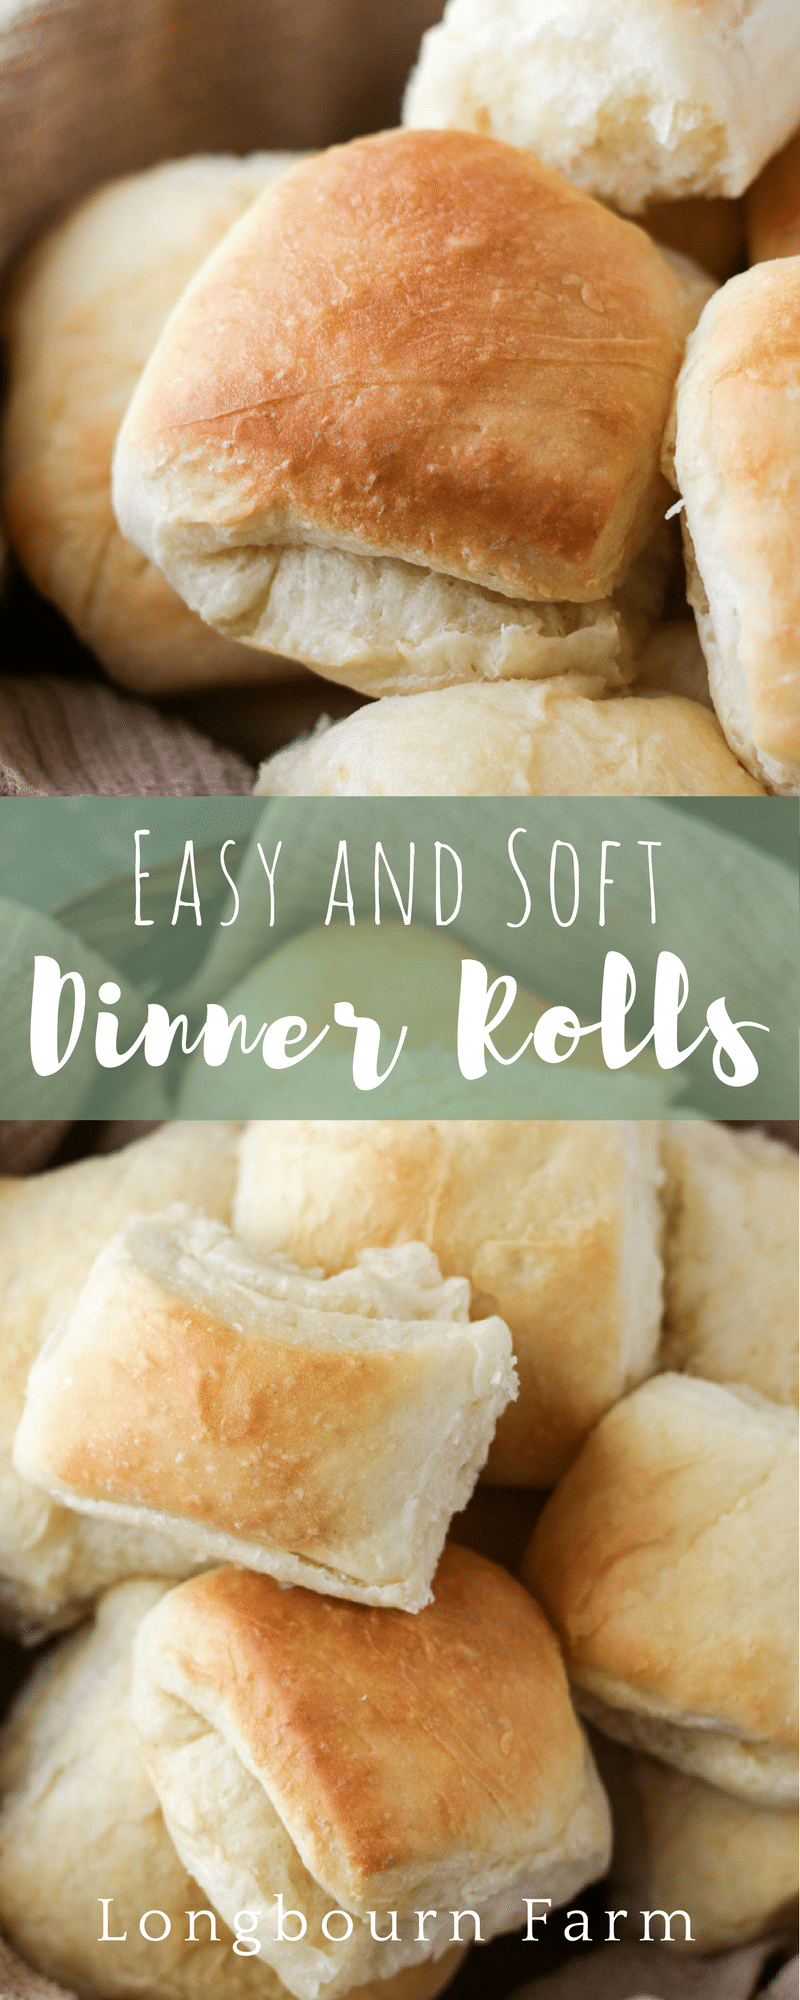 This easy dinner roll recipe is perfect for any meal, especially holiday dinners! No kneading required, these soft, fluffy, rolls are perfect every time.